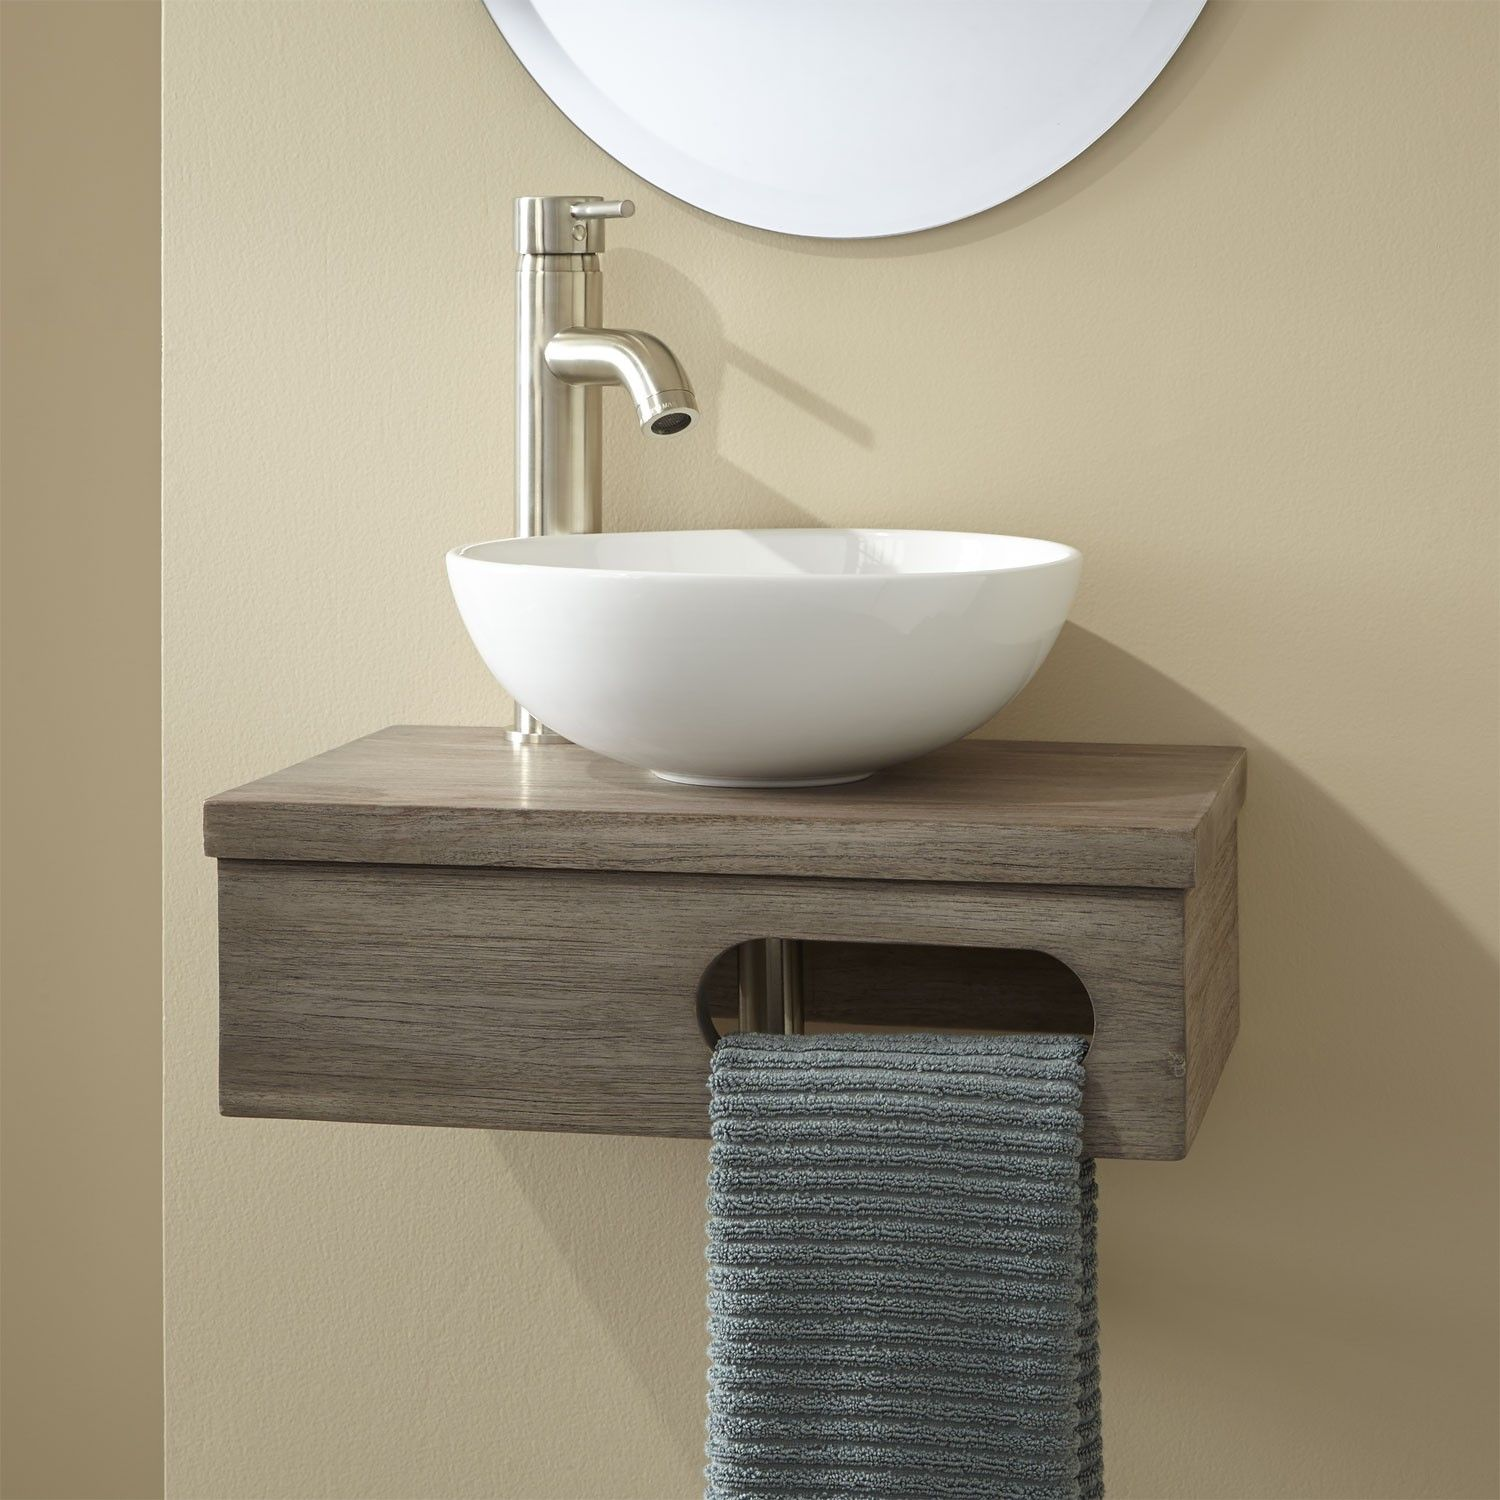 Teak Vanity Bathroom Rimpett Petrified Wood Vessel Sink Teak Woods And The Ojays